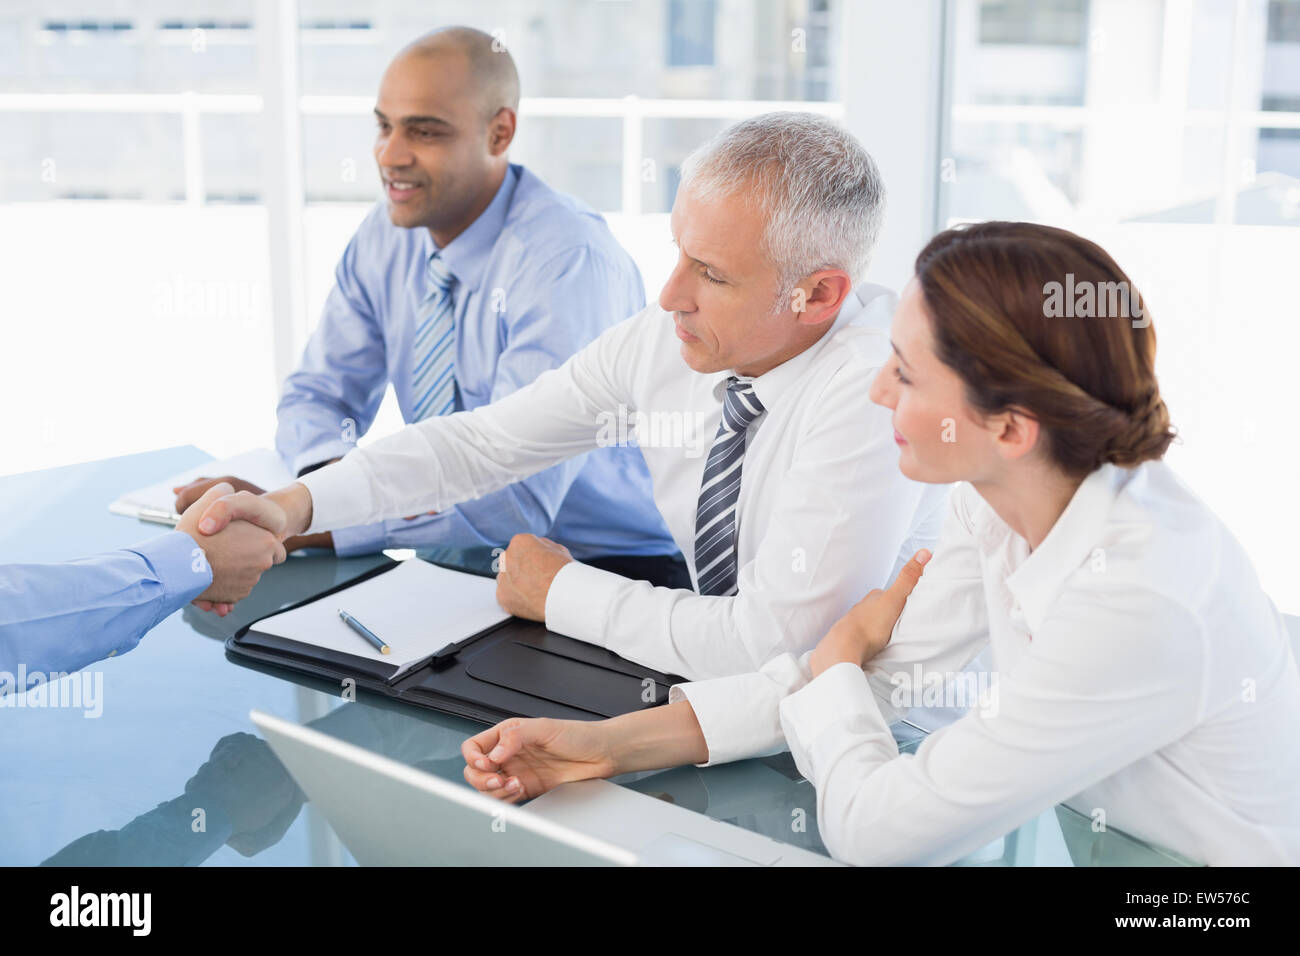 Businessman shaking hand during work interview - Stock Image